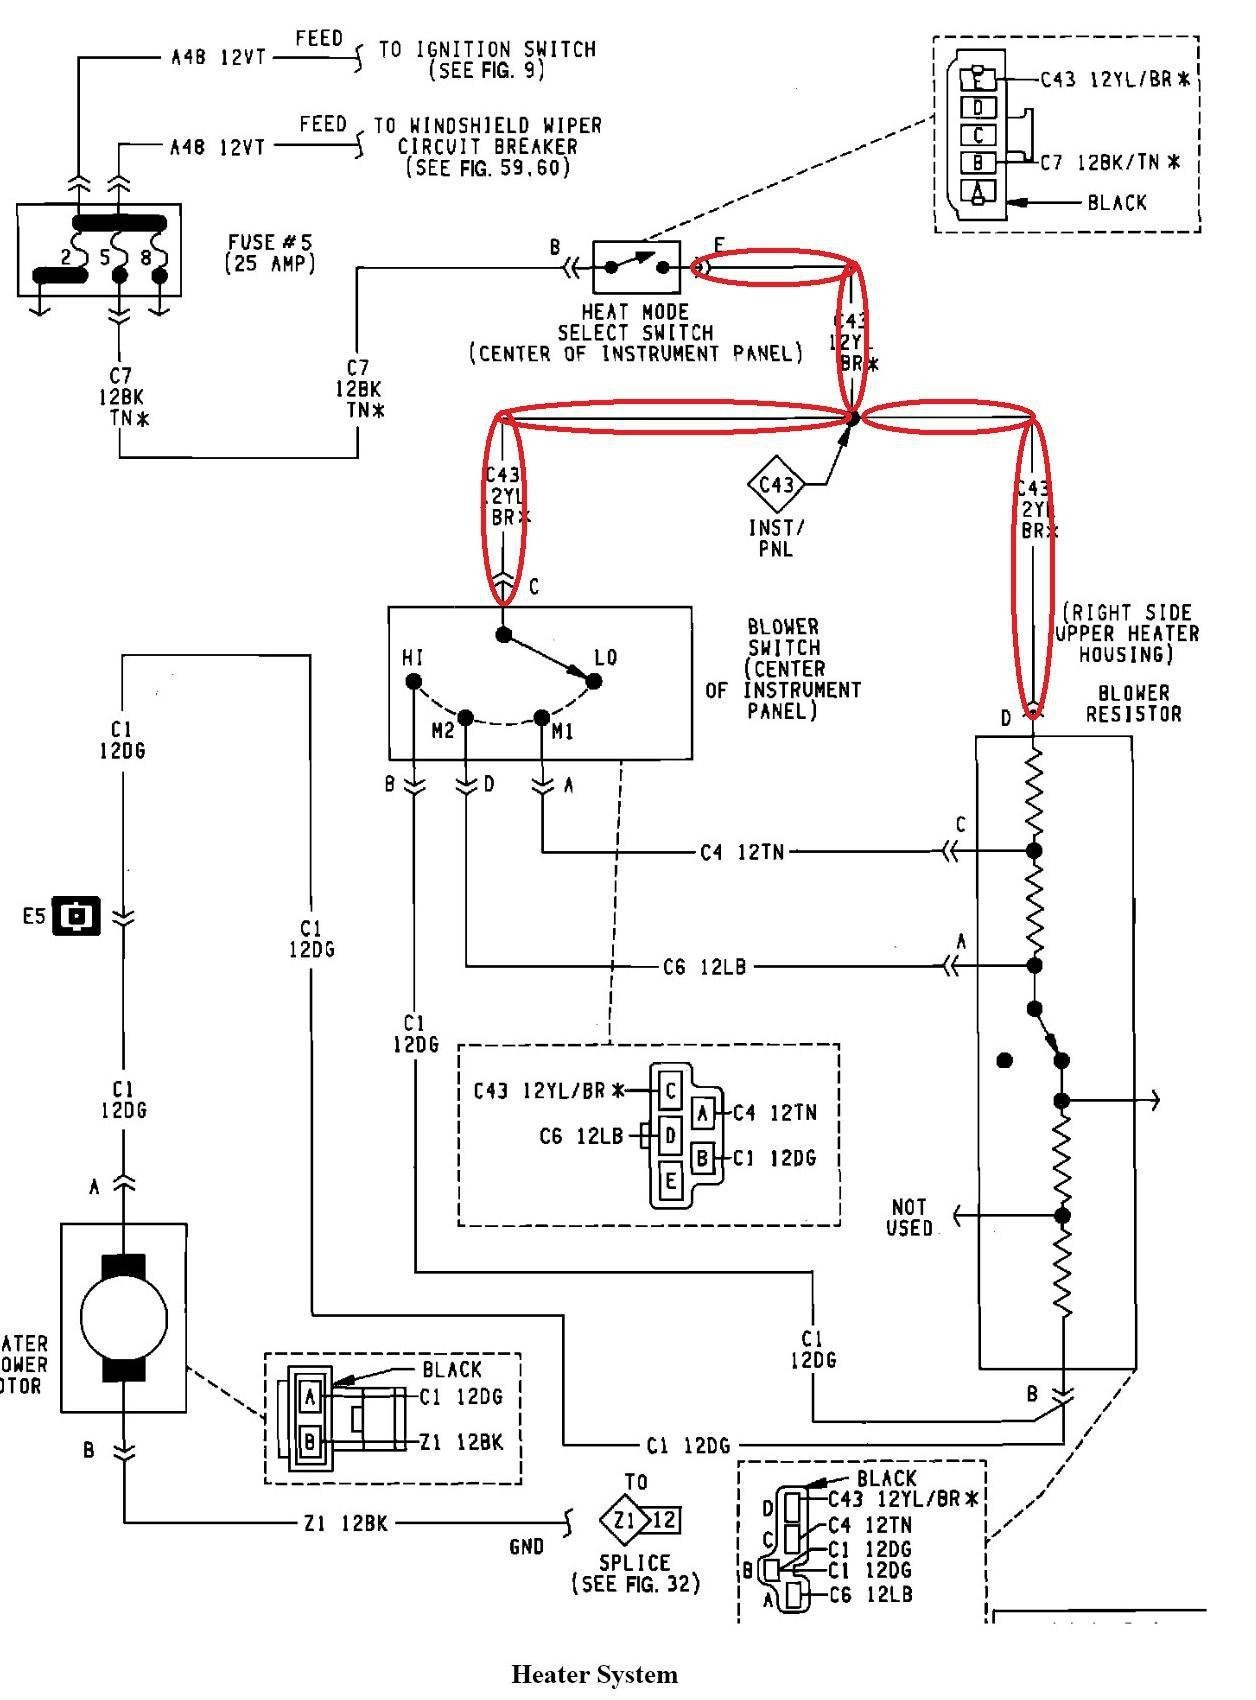 ez go txt battery diagram wiring diagram database rh 5 buhker nintendomonsen de ezgo 36 volt charger wiring diagram ezgo marathon 36 volt wiring diagram